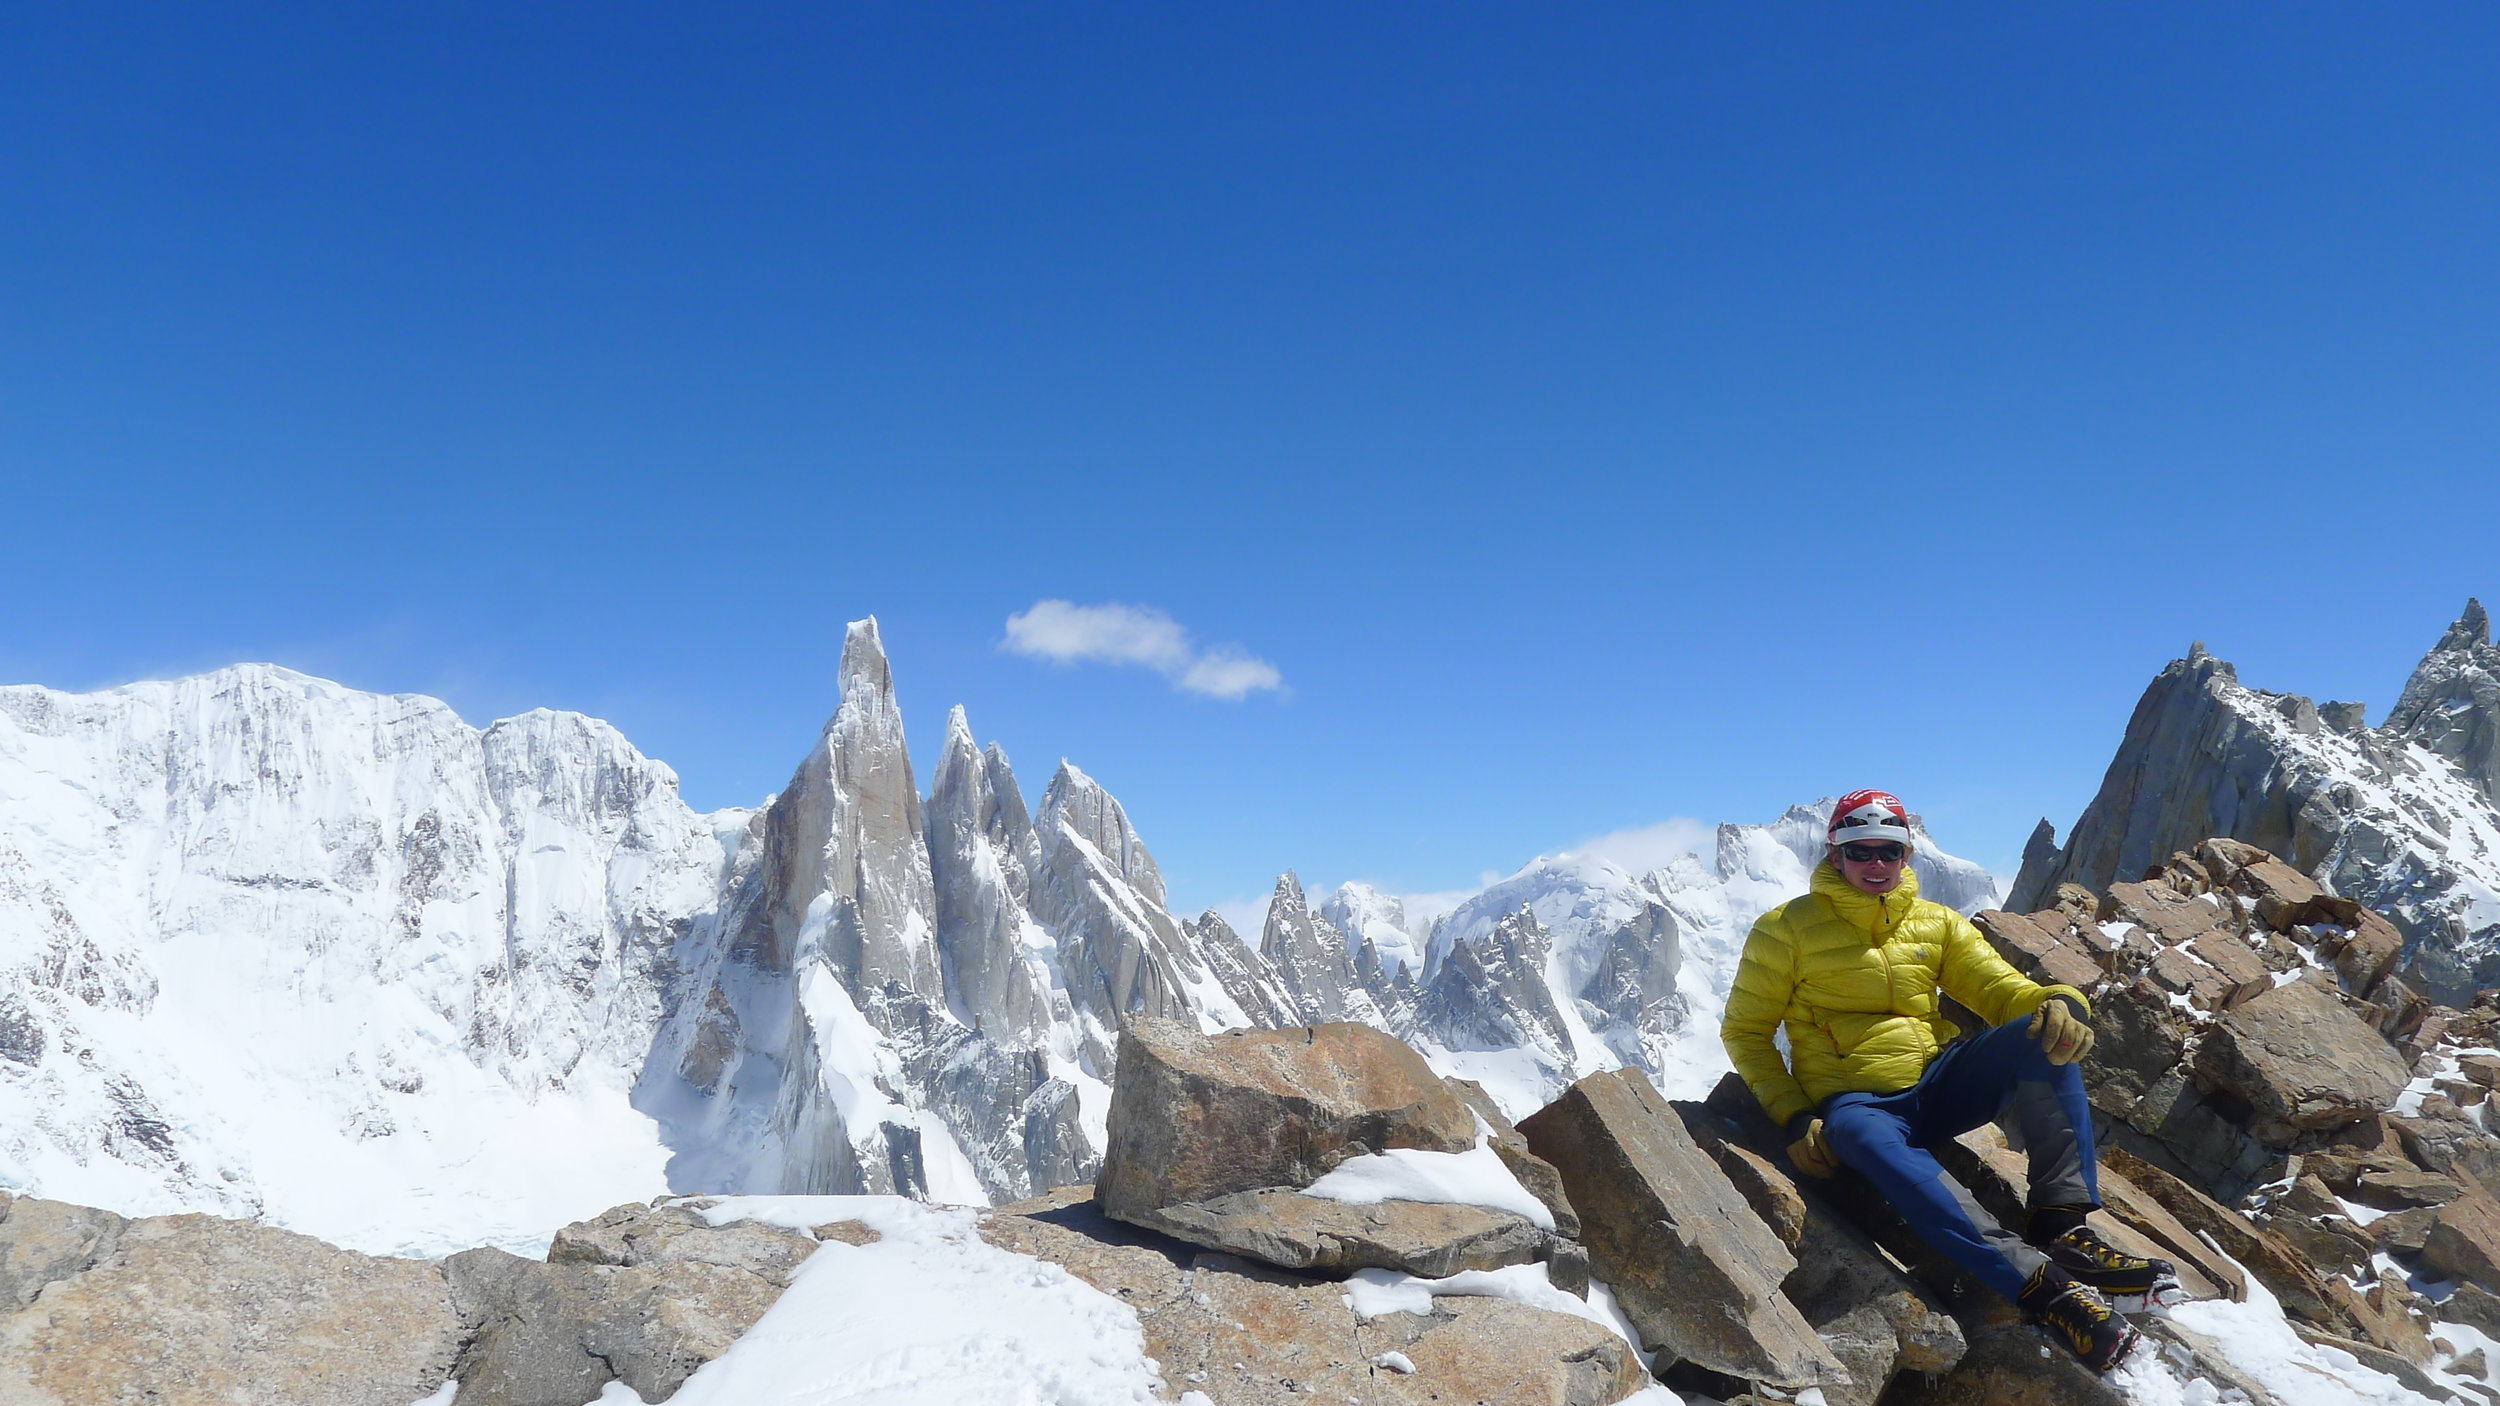 From the summit of Mojon Rojo, with Cerro Torre, Torre Egger and Cerro Standhart in the background. Photo: Tony Stone